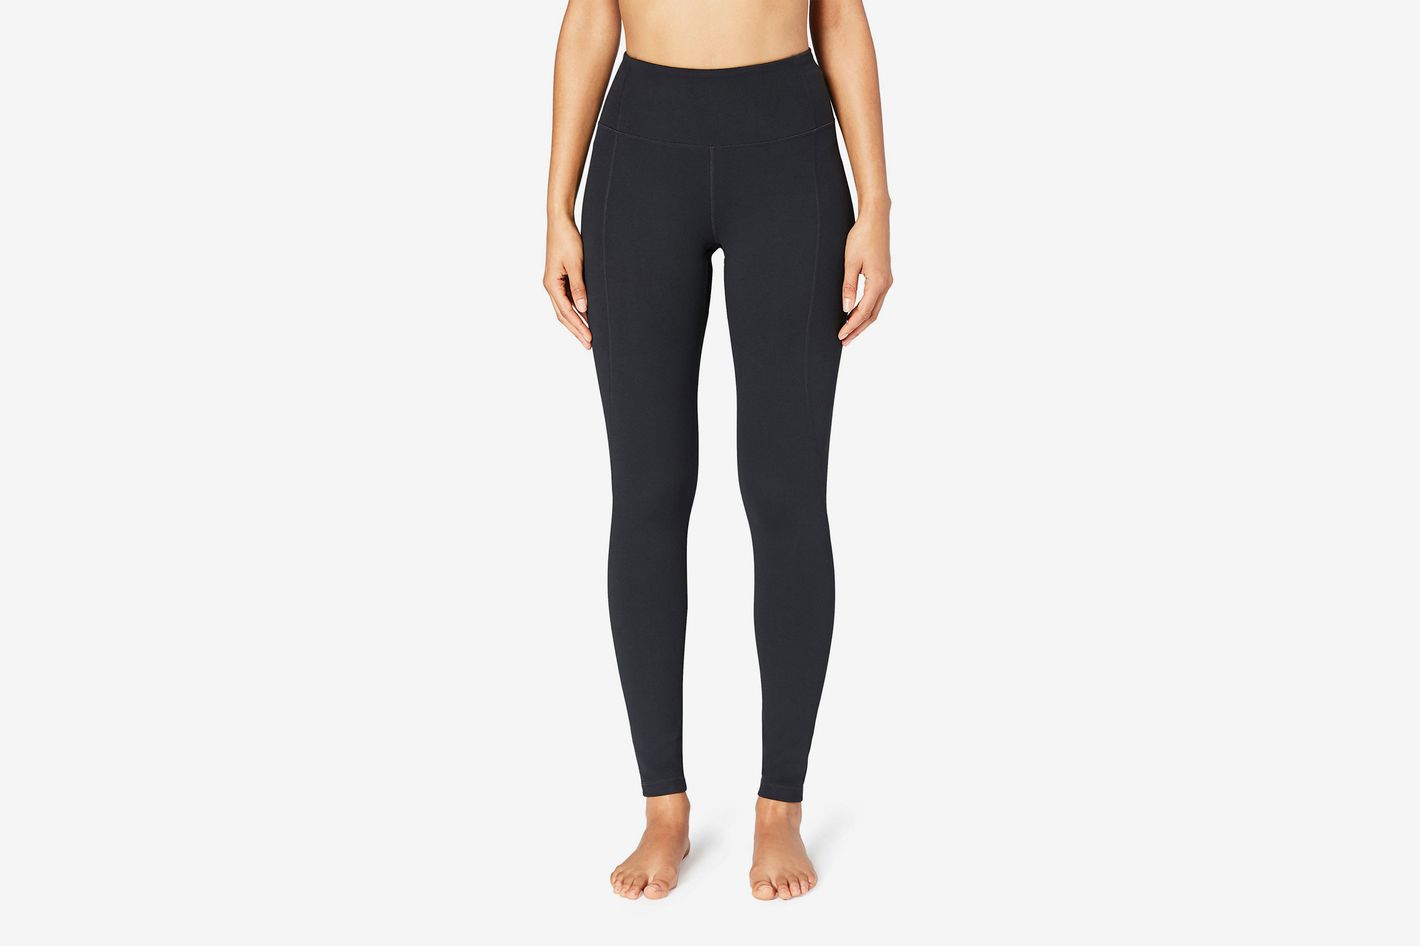 cb1292fae2735 9 Best Yoga Pants for Women 2019